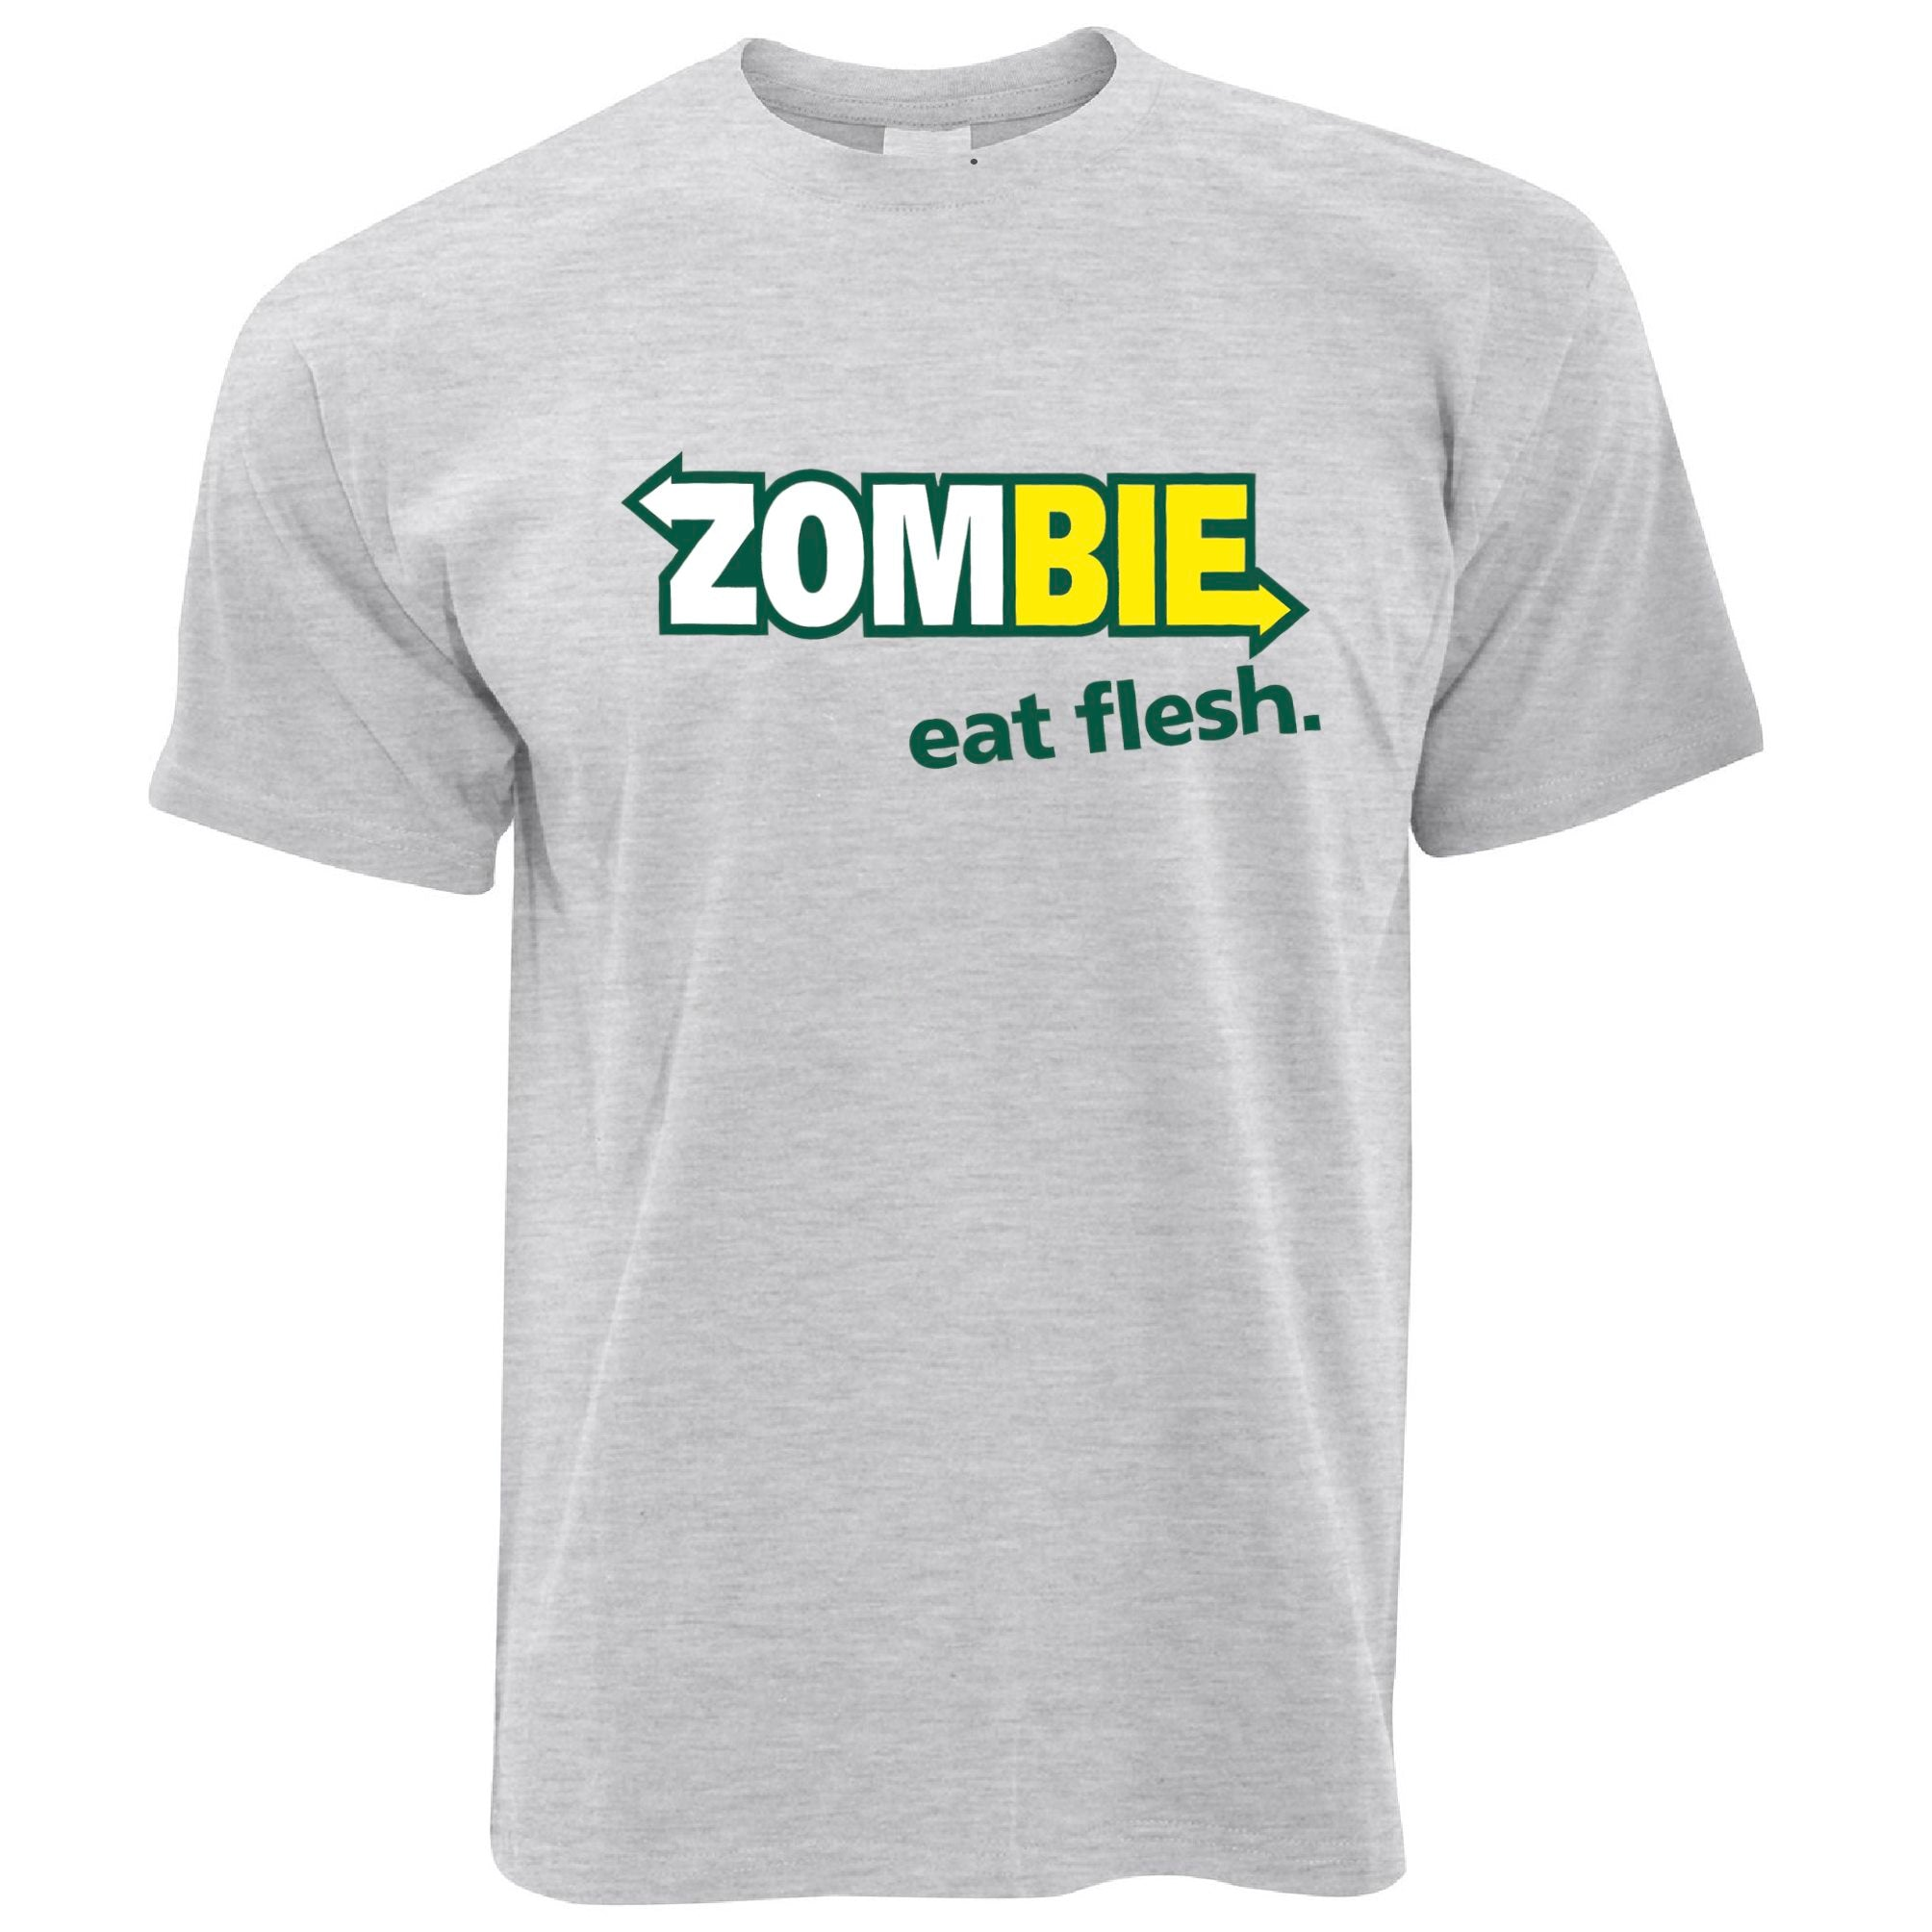 Mens Zombie T Shirt Eat Fresh Flesh Slogan Parody Tee